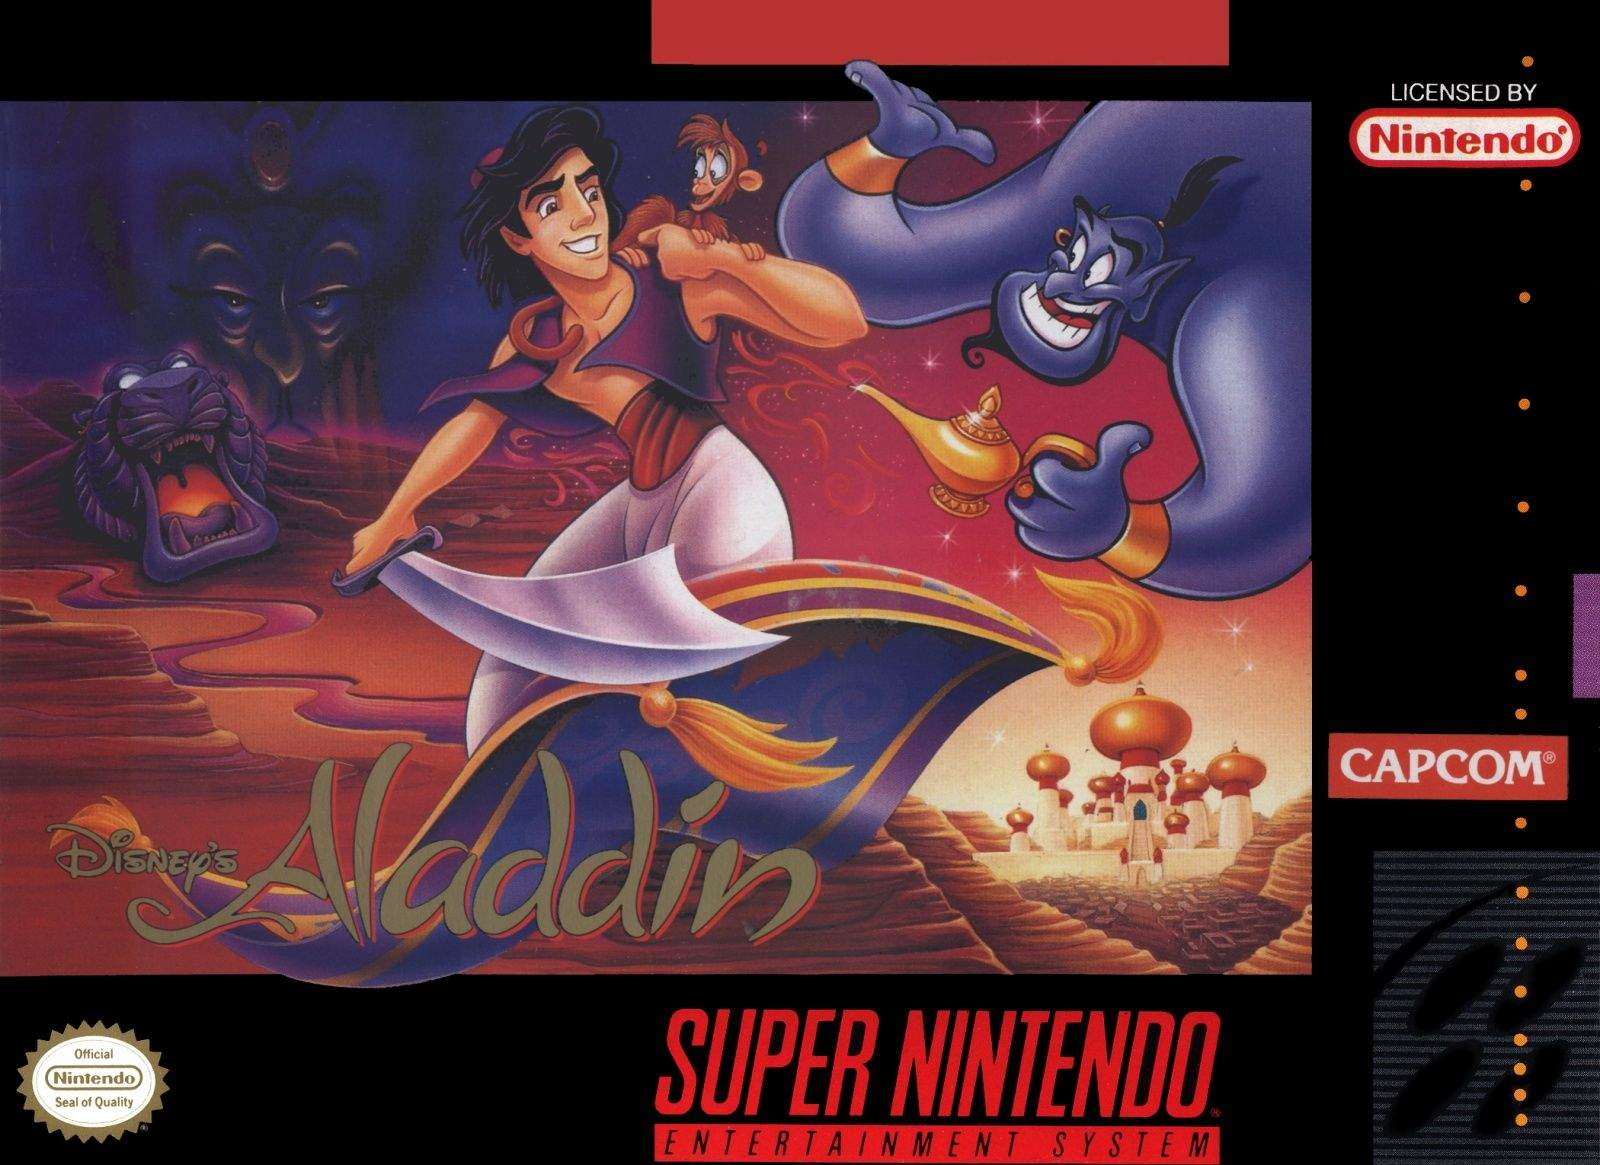 This delightfully colorful video game had kids throwing apples and leaping across dangerous bazaar stalls  to re-enact some of the crazy scenes from the Disney animated movie of the same name. The title blended some Prince of Persia gameplay with the easy-on-the-eyes color palette of the Disney hit to create a very playable video game experience.